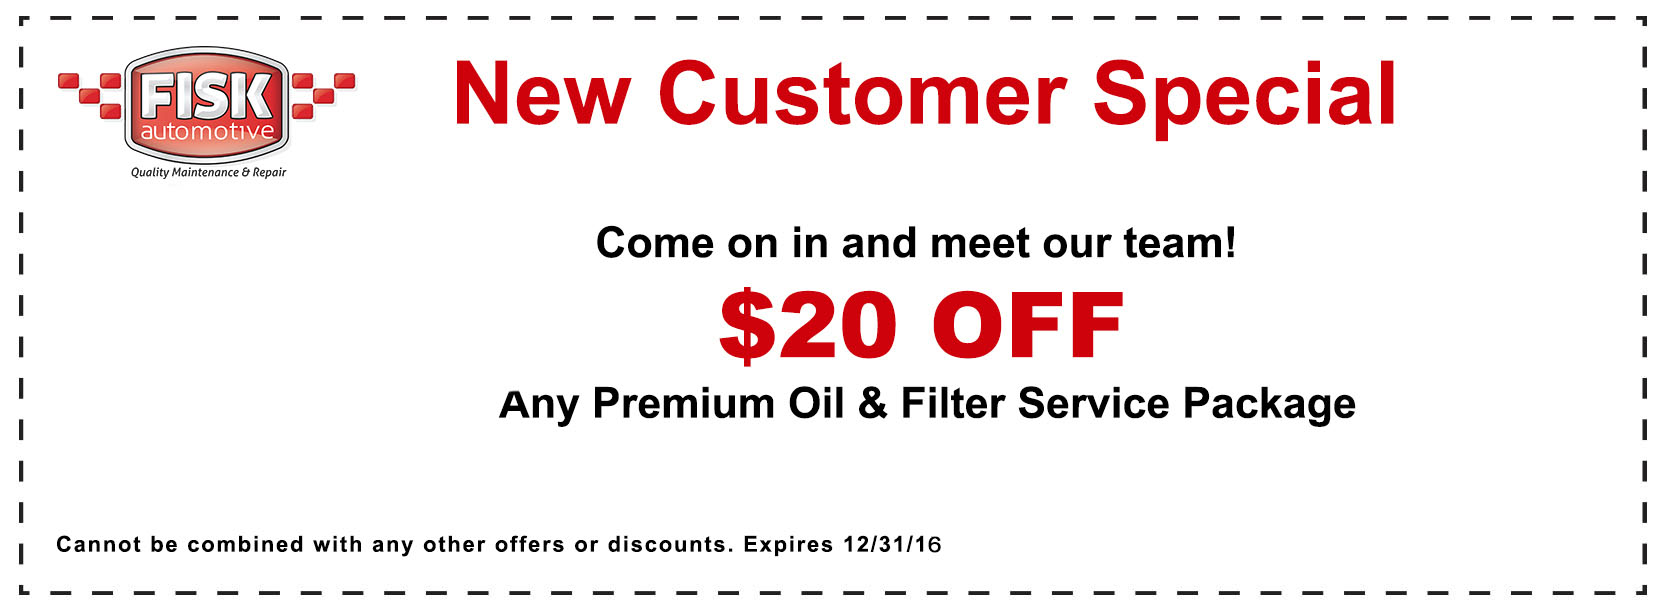 new-customer-special